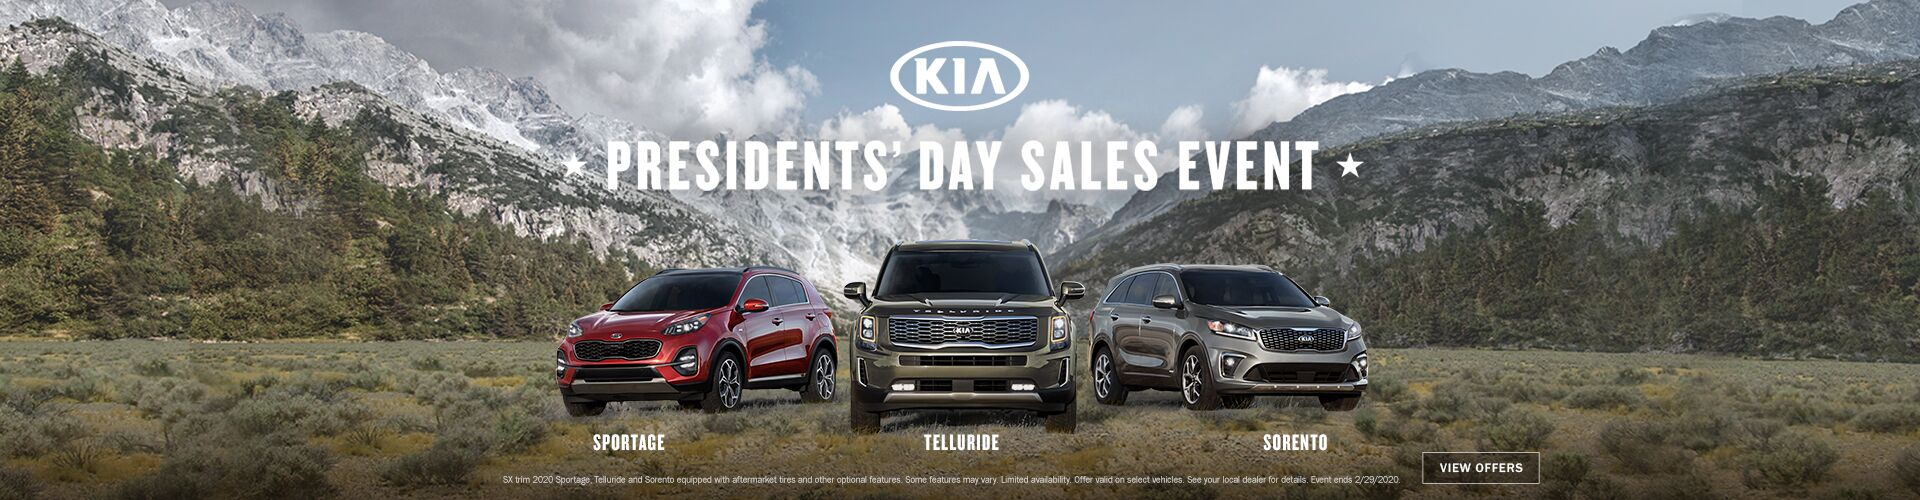 Kia President's Day Sales Event